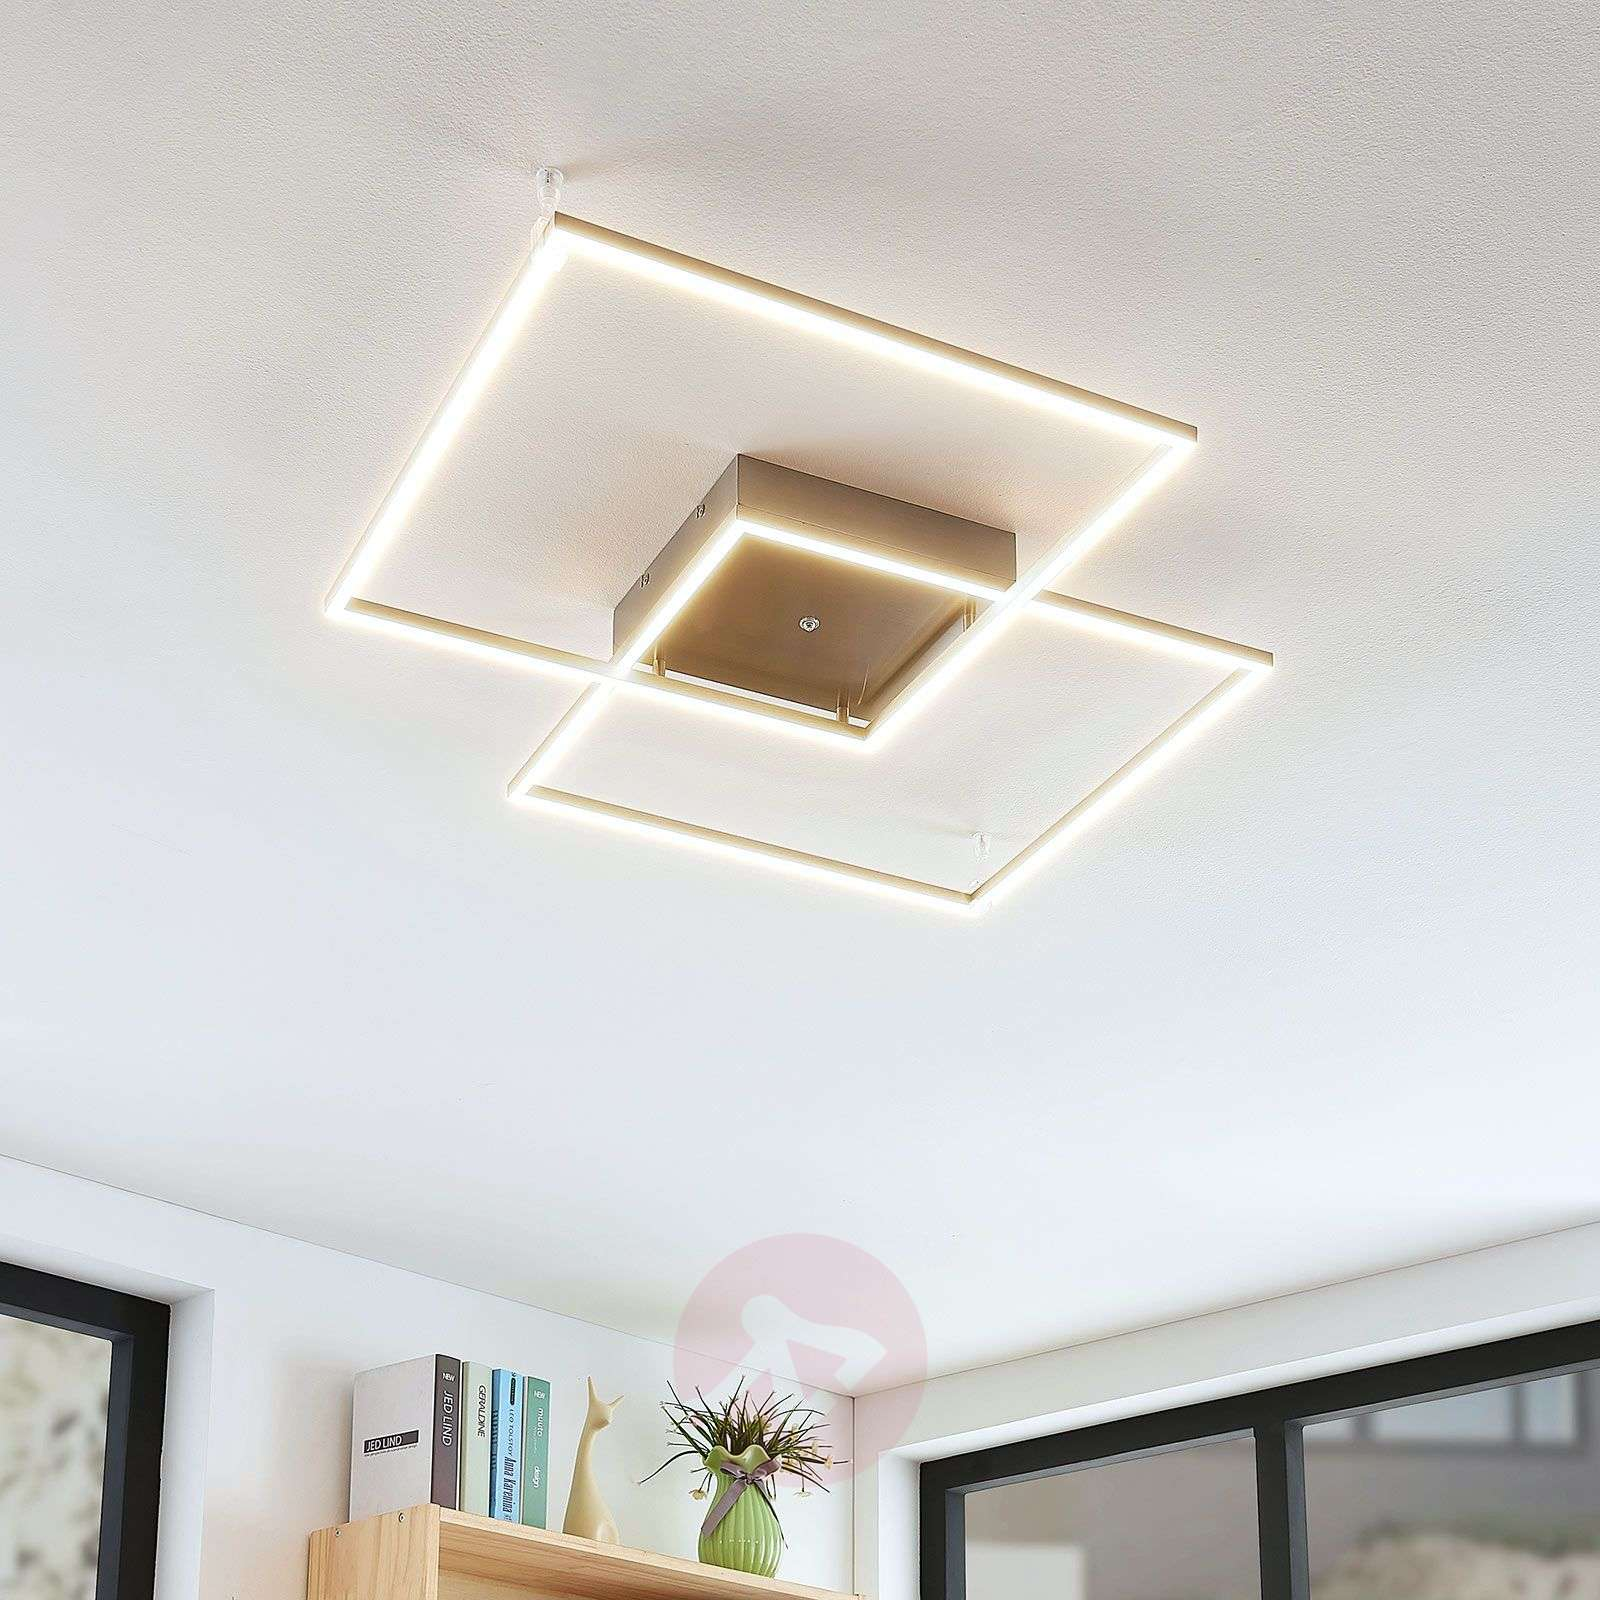 Mirac: lampada da soffitto a LED luminosa-7620025-03